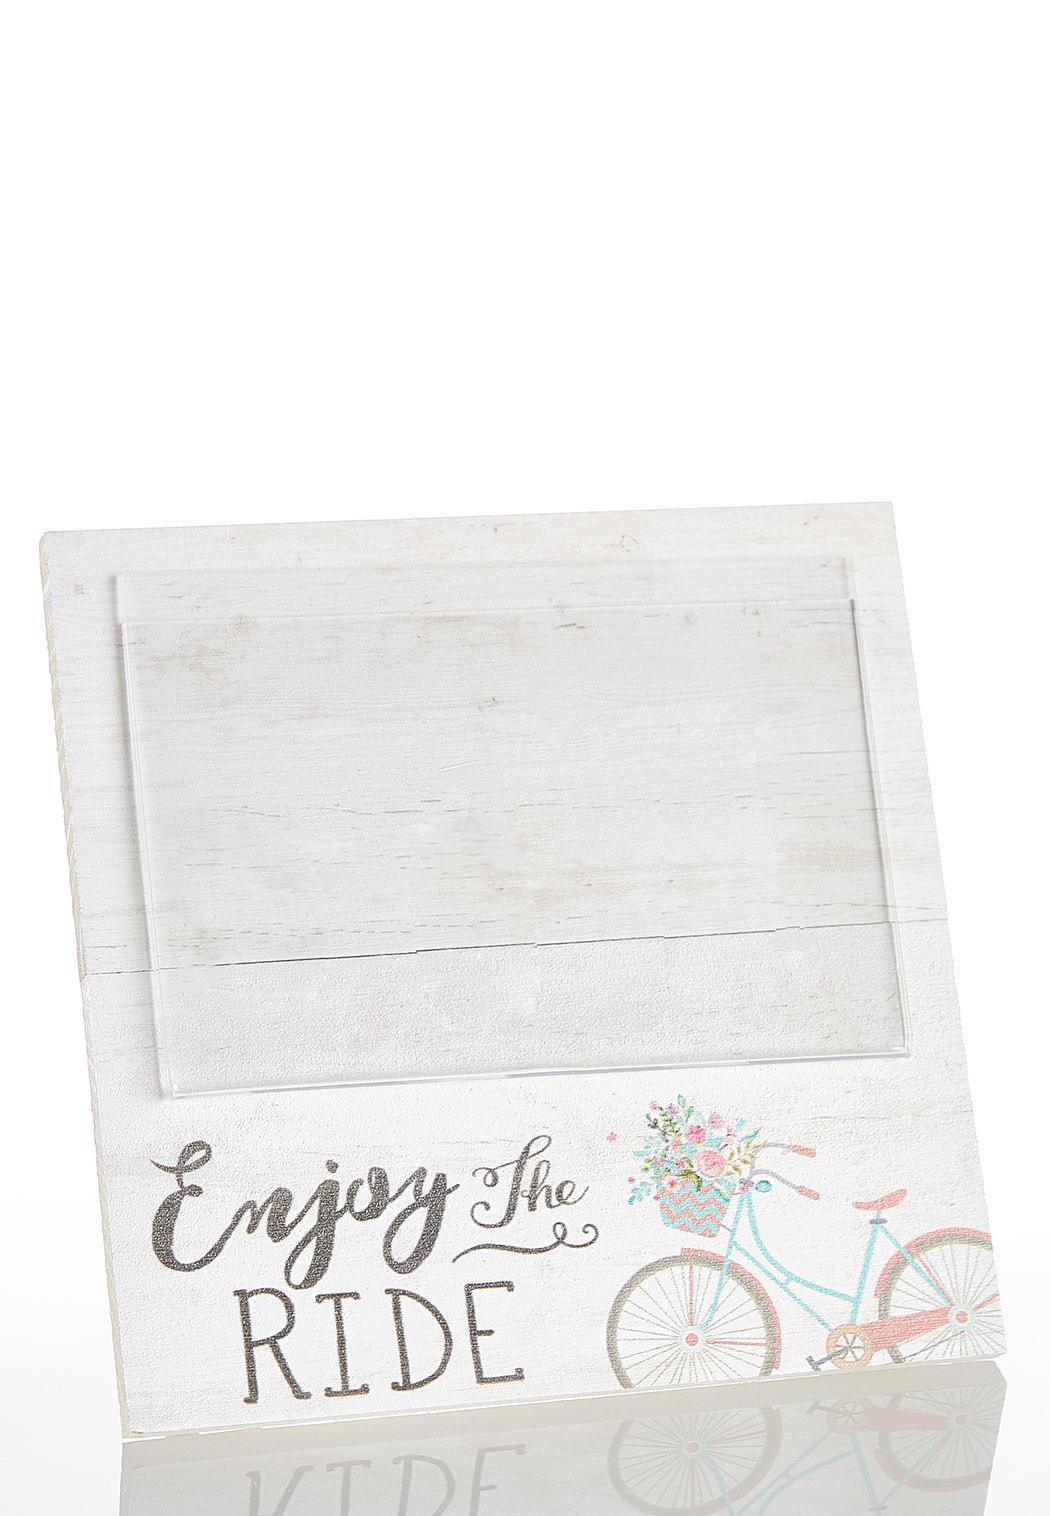 Enjoy The Ride Picture Frame